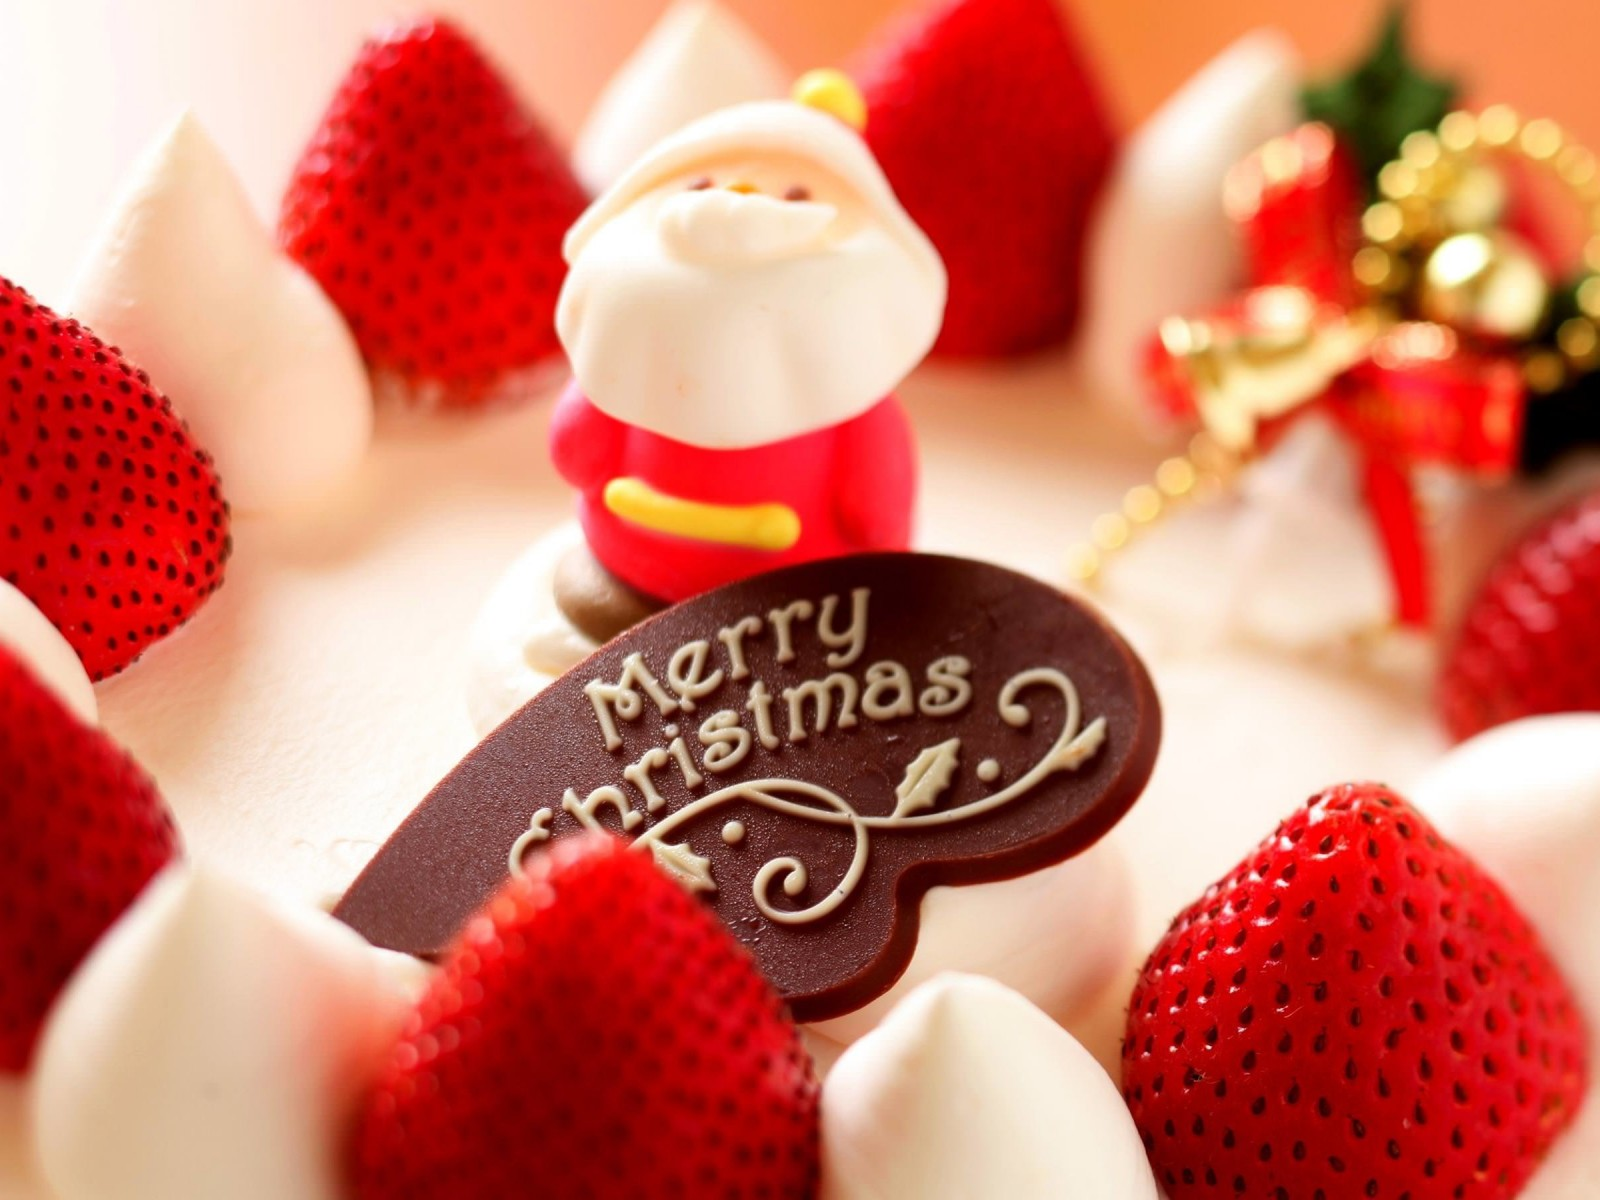 Merry Christmas Strawberry Dessert Wallpaper for Desktop 1600x1200